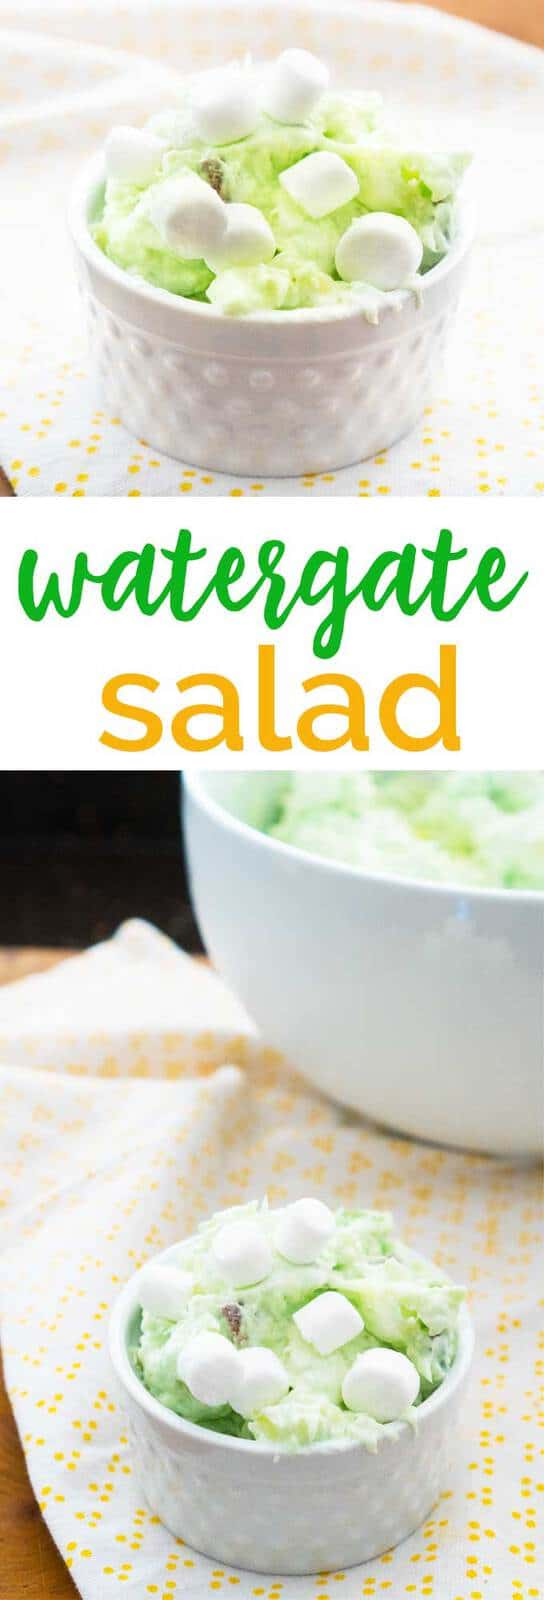 Watergate Salad is a 1970s era dessert with pistachio pudding, whipped cream, marshmallows, pineapple, and pecans and while it sounds like a crazy mix, it's absolutely delicious! #recipes #dessert